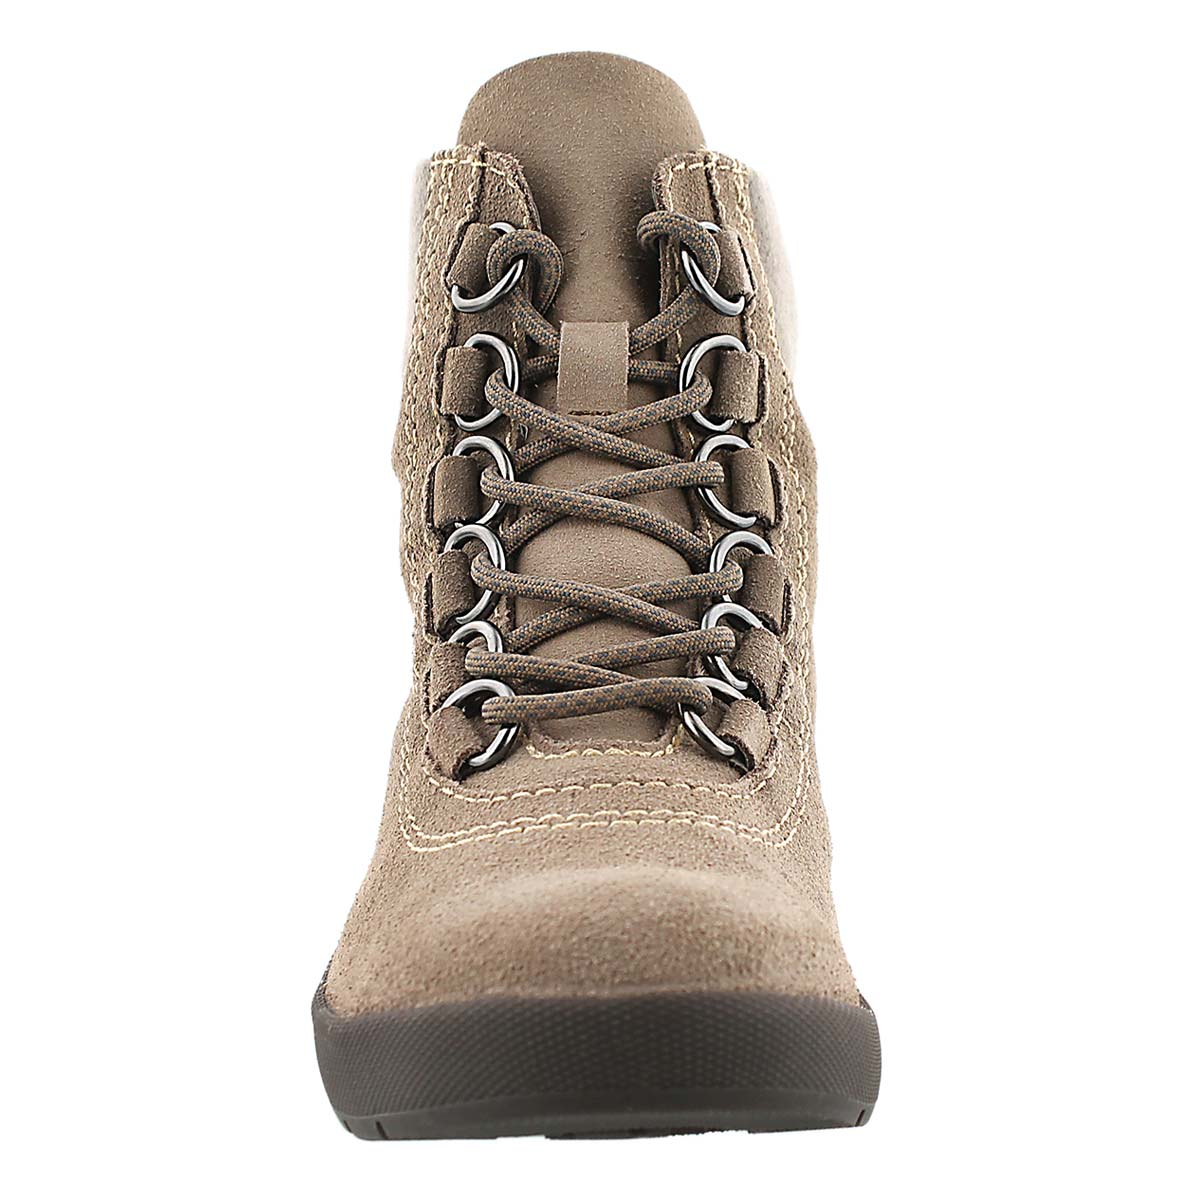 Lds Dorris Fairley tpe wtpf winter boot